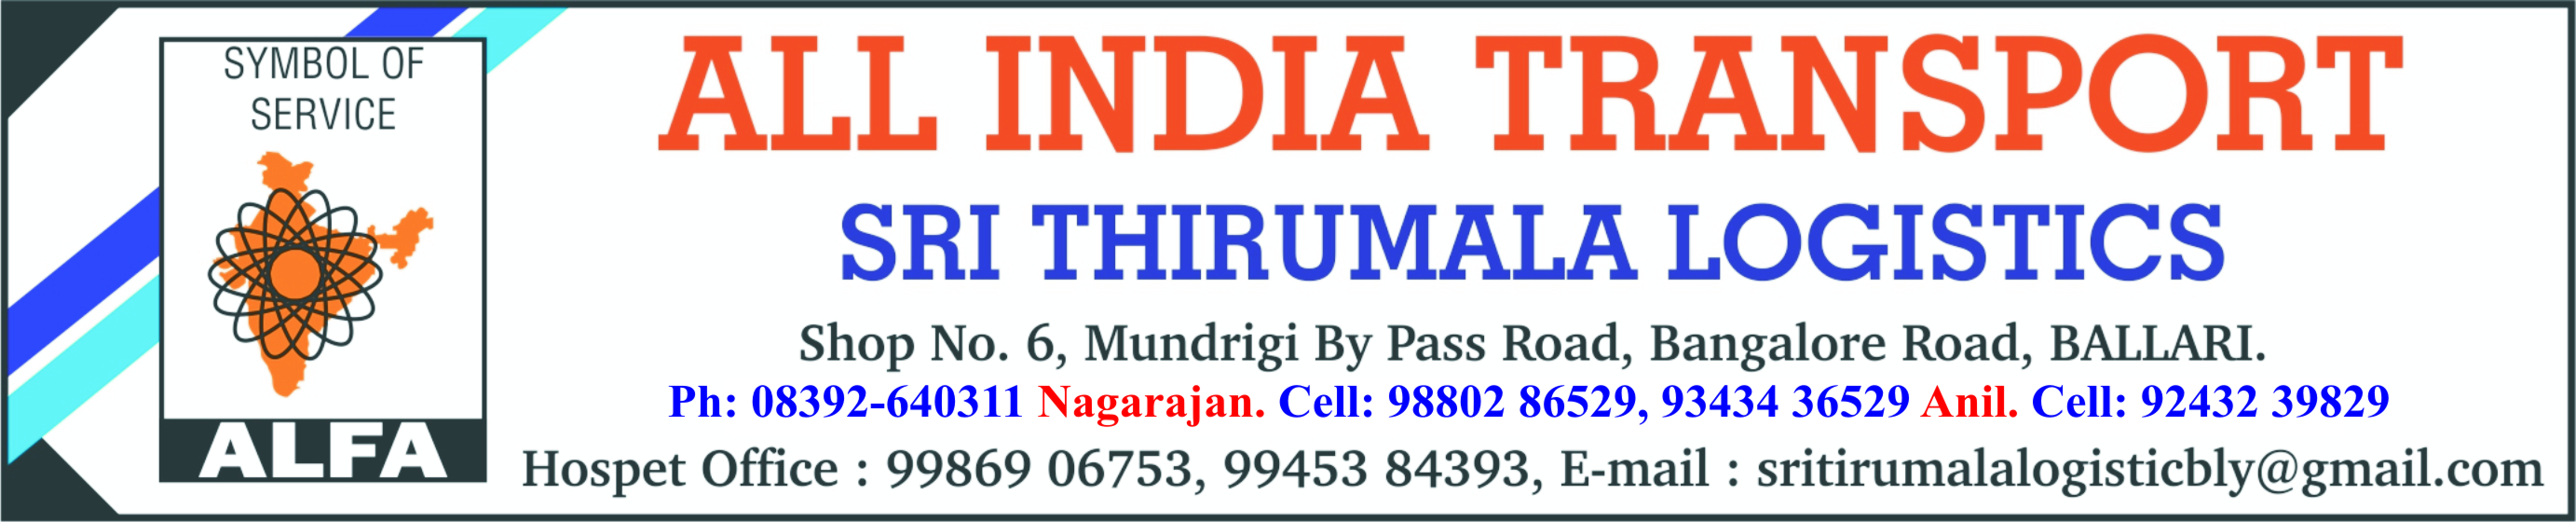 All India Transport